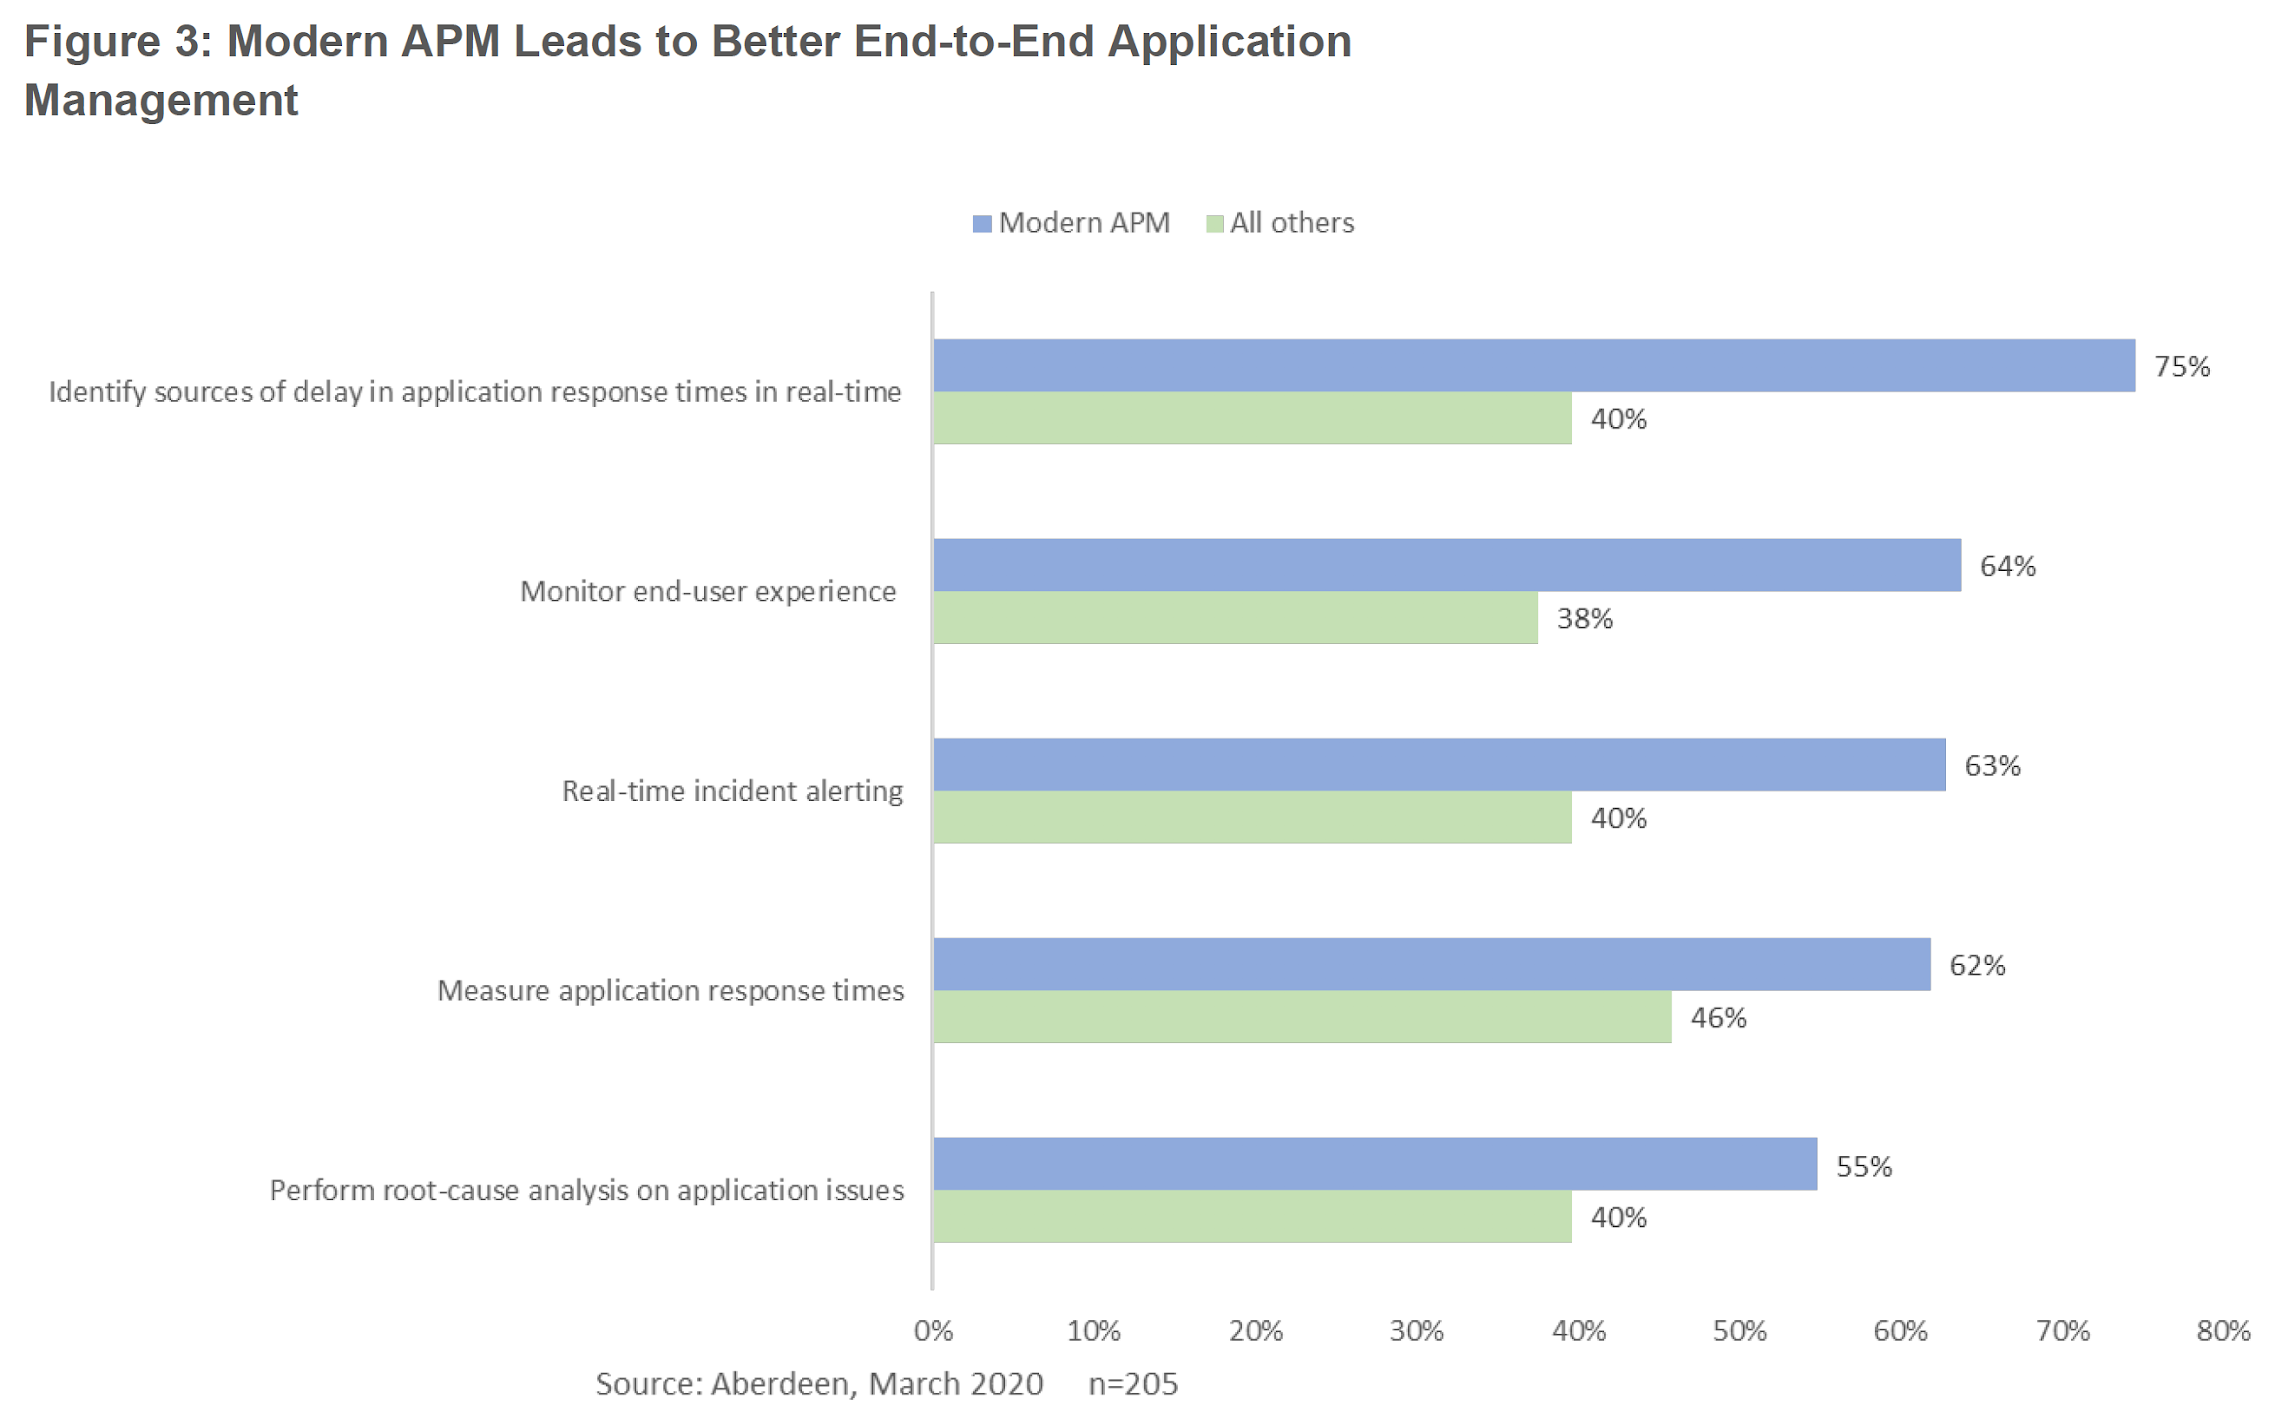 Figure 3: Modern APM Leads to Better End-to-End Application Management